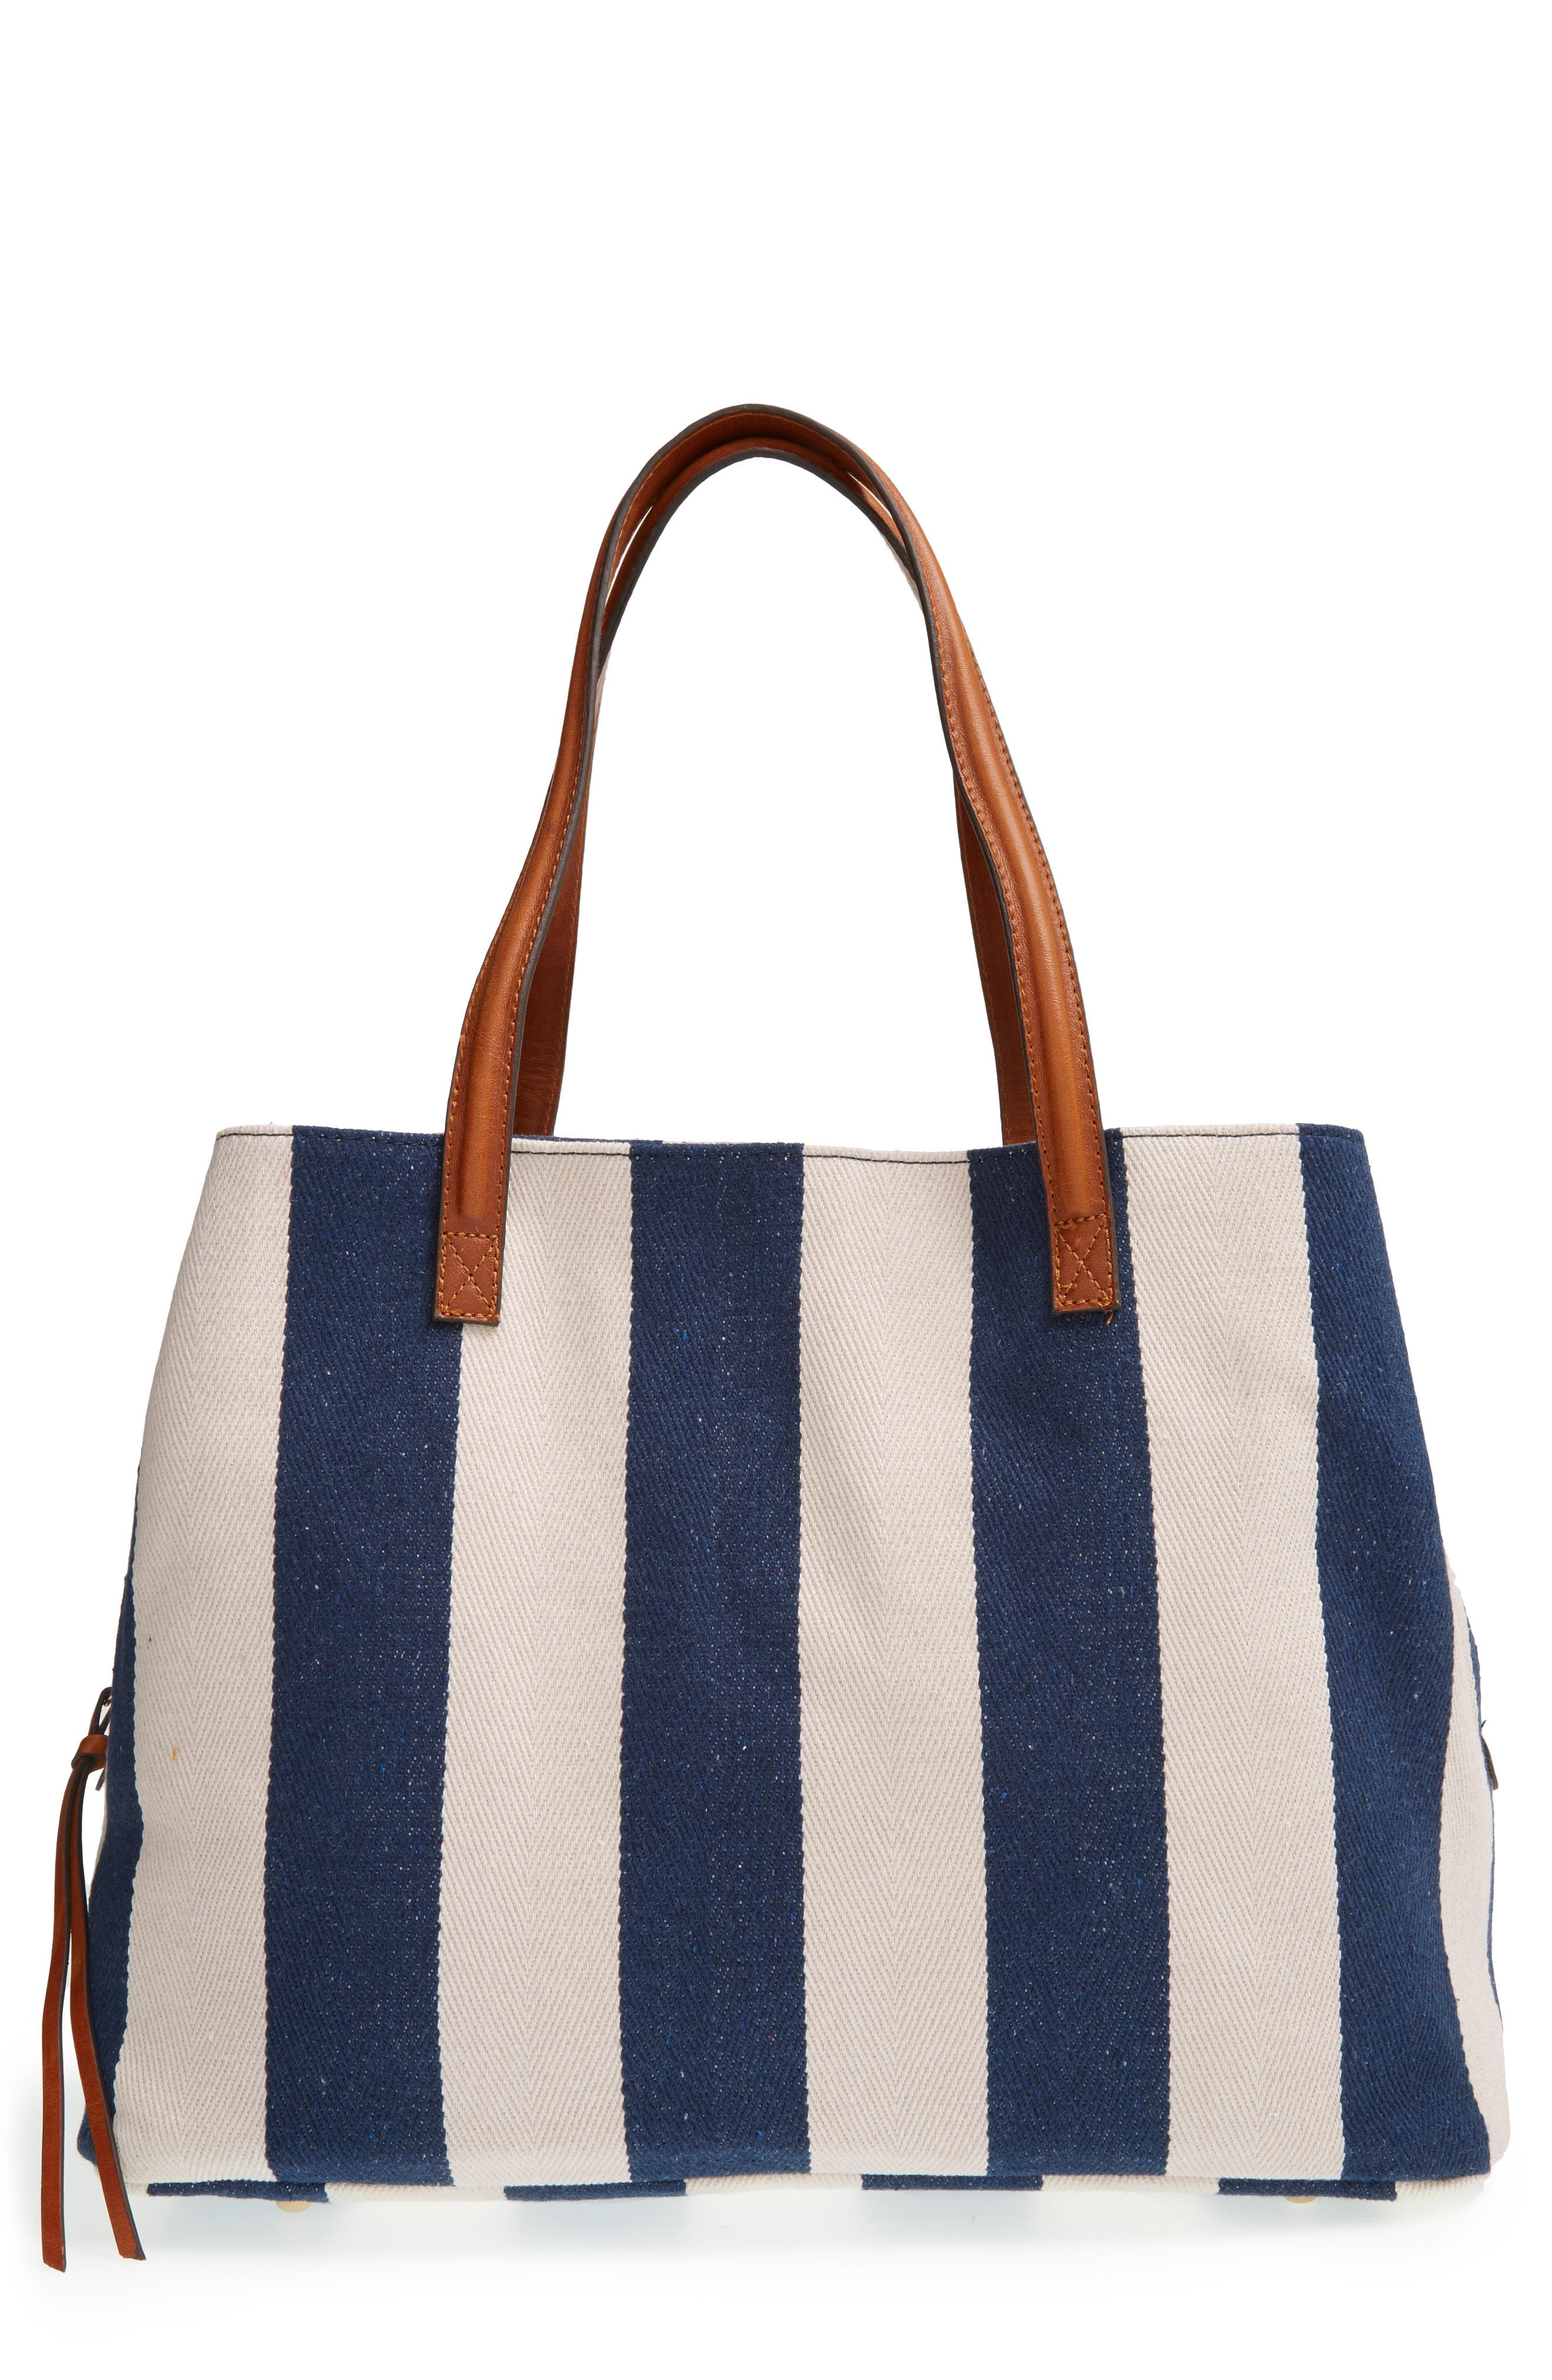 SOLE SOCIETY, 'Oversize Millie' Stripe Print Tote, Main thumbnail 1, color, NAVY CREAM